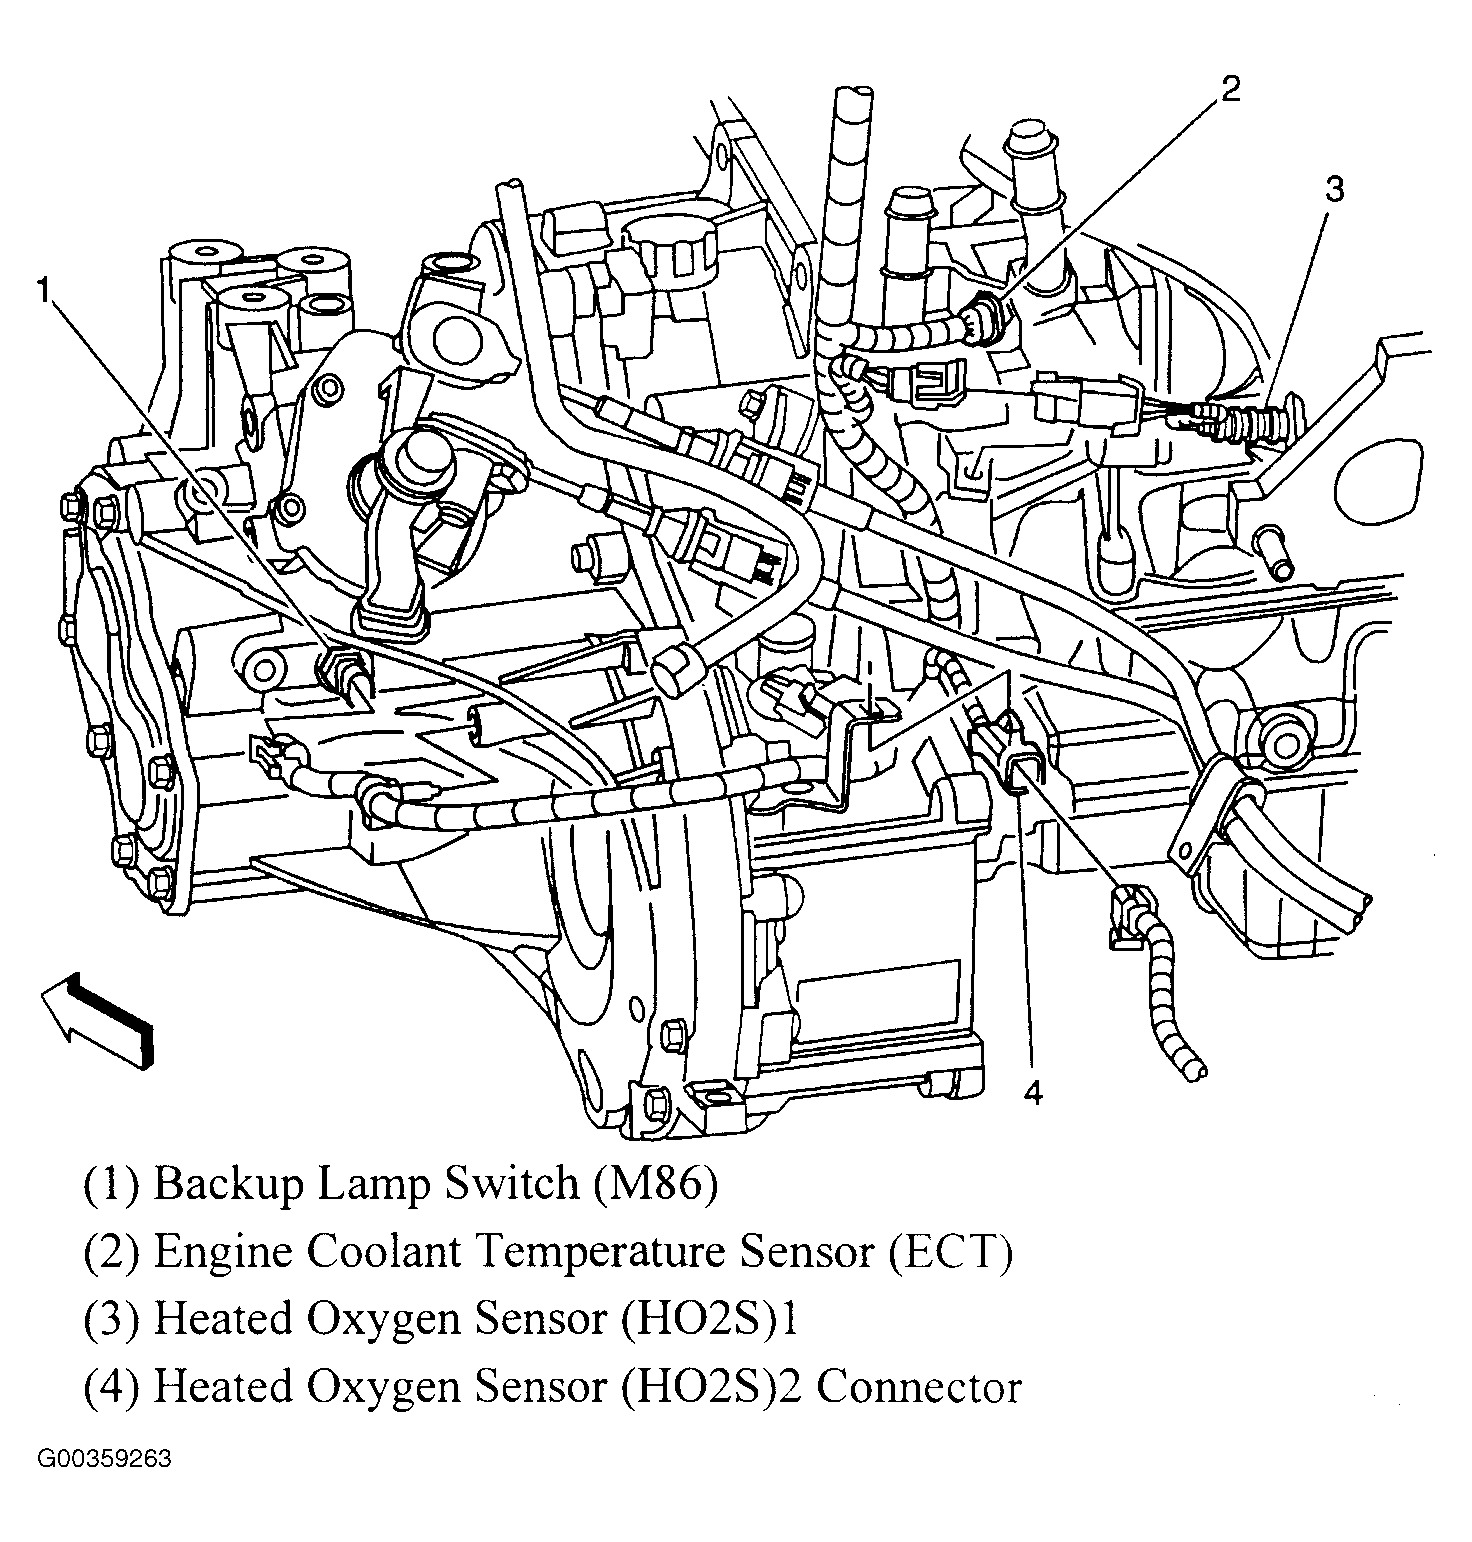 2007 Saturn Ion Ects: Hi Just Need to Know Were the Engine